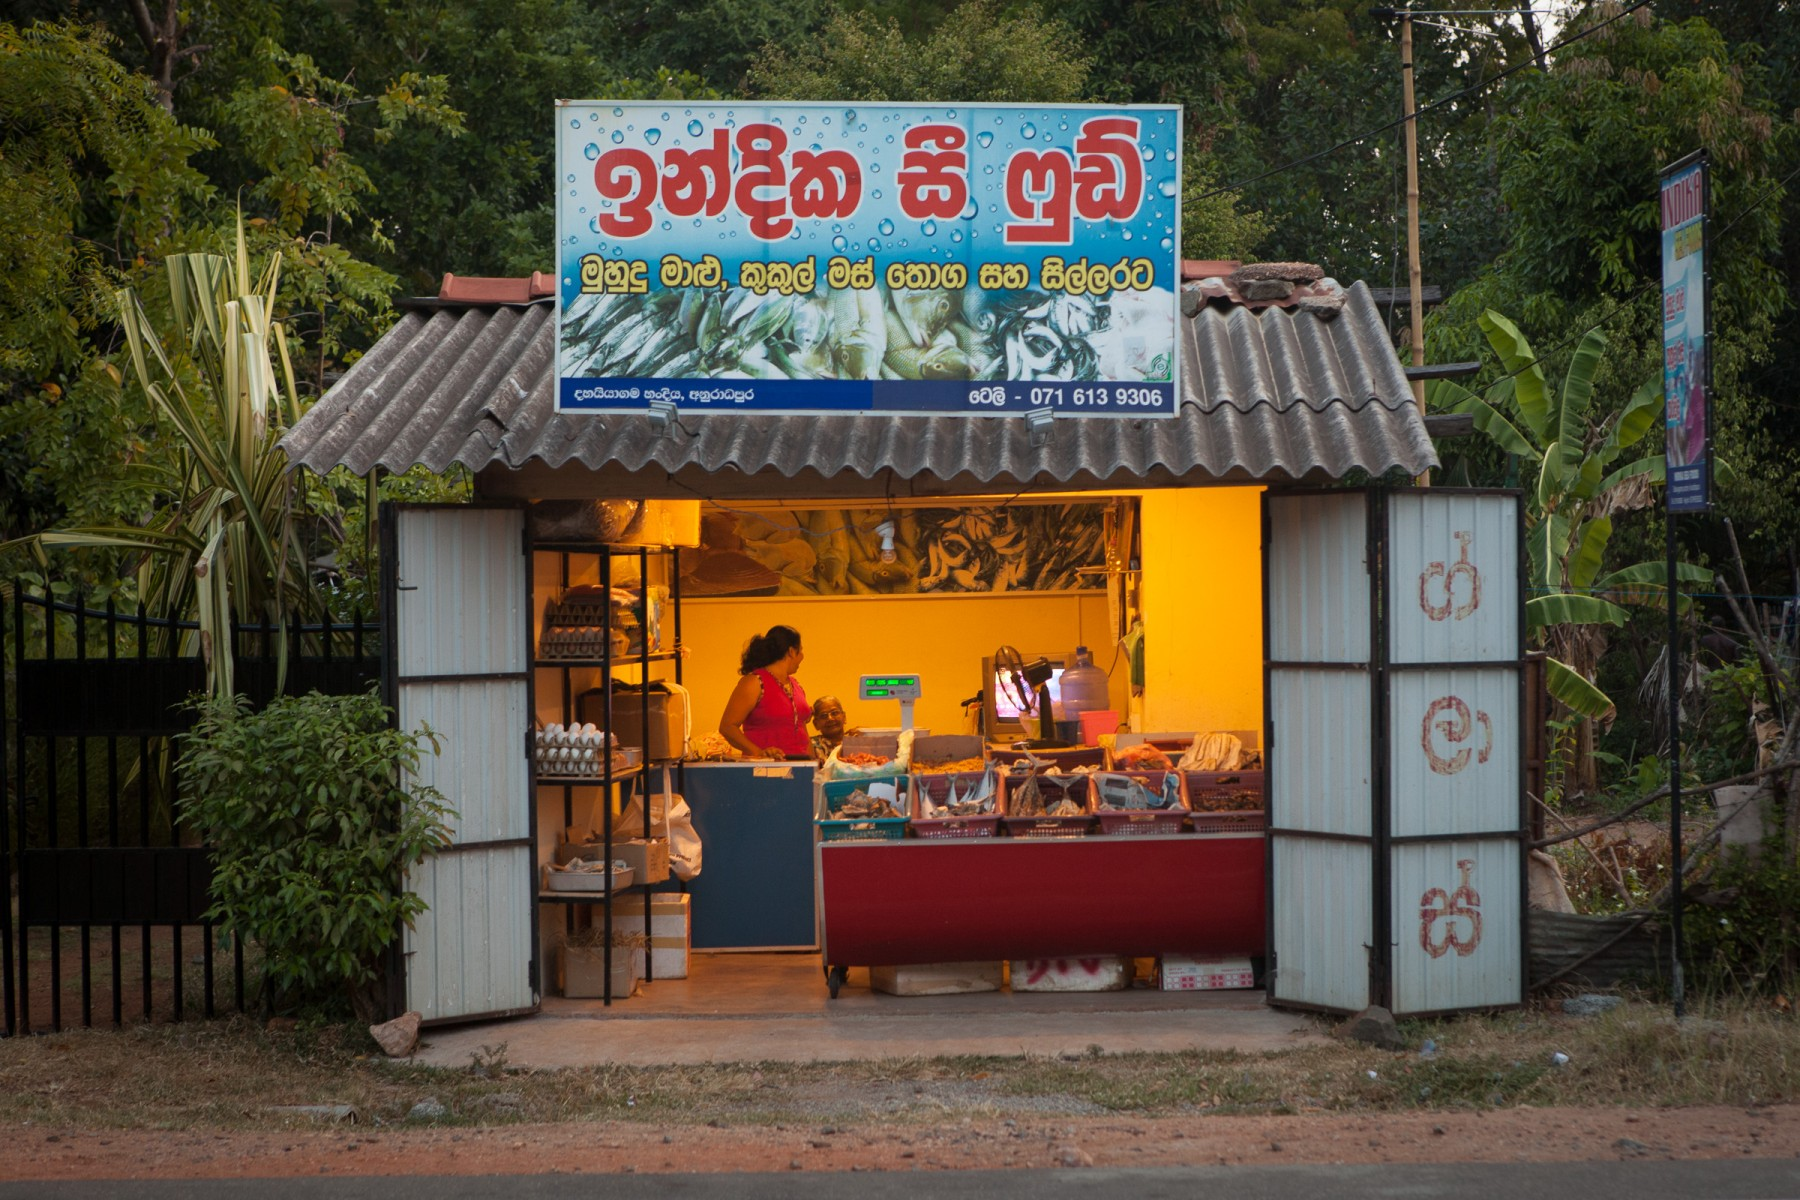 Fish stall on Senanayaka Mawatha in Anuradhapura.